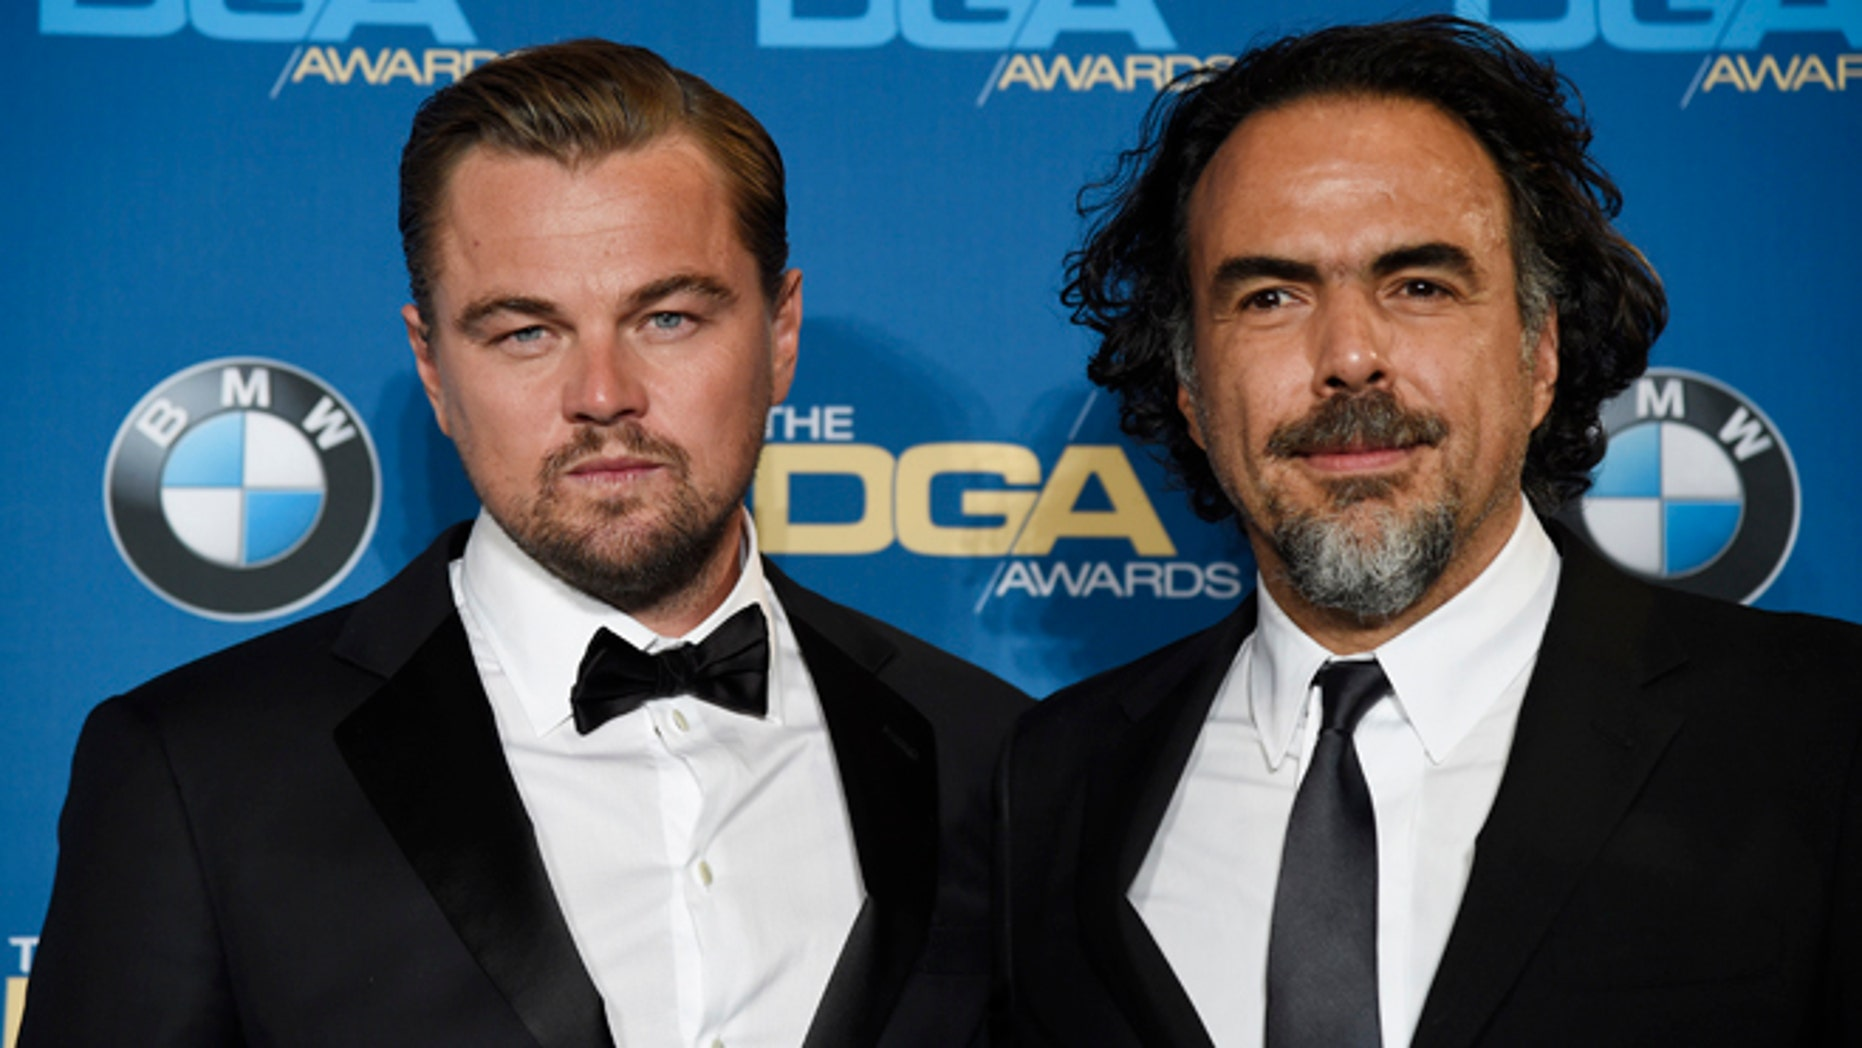 """Feb 6, 2016. Leonardo DiCaprio, left, star of  """"The Revenant,"""" poses backstage with the film's director Alejandro Gonzalez Inarritu at the 68th Directors Guild of America Awards in Los Angeles."""